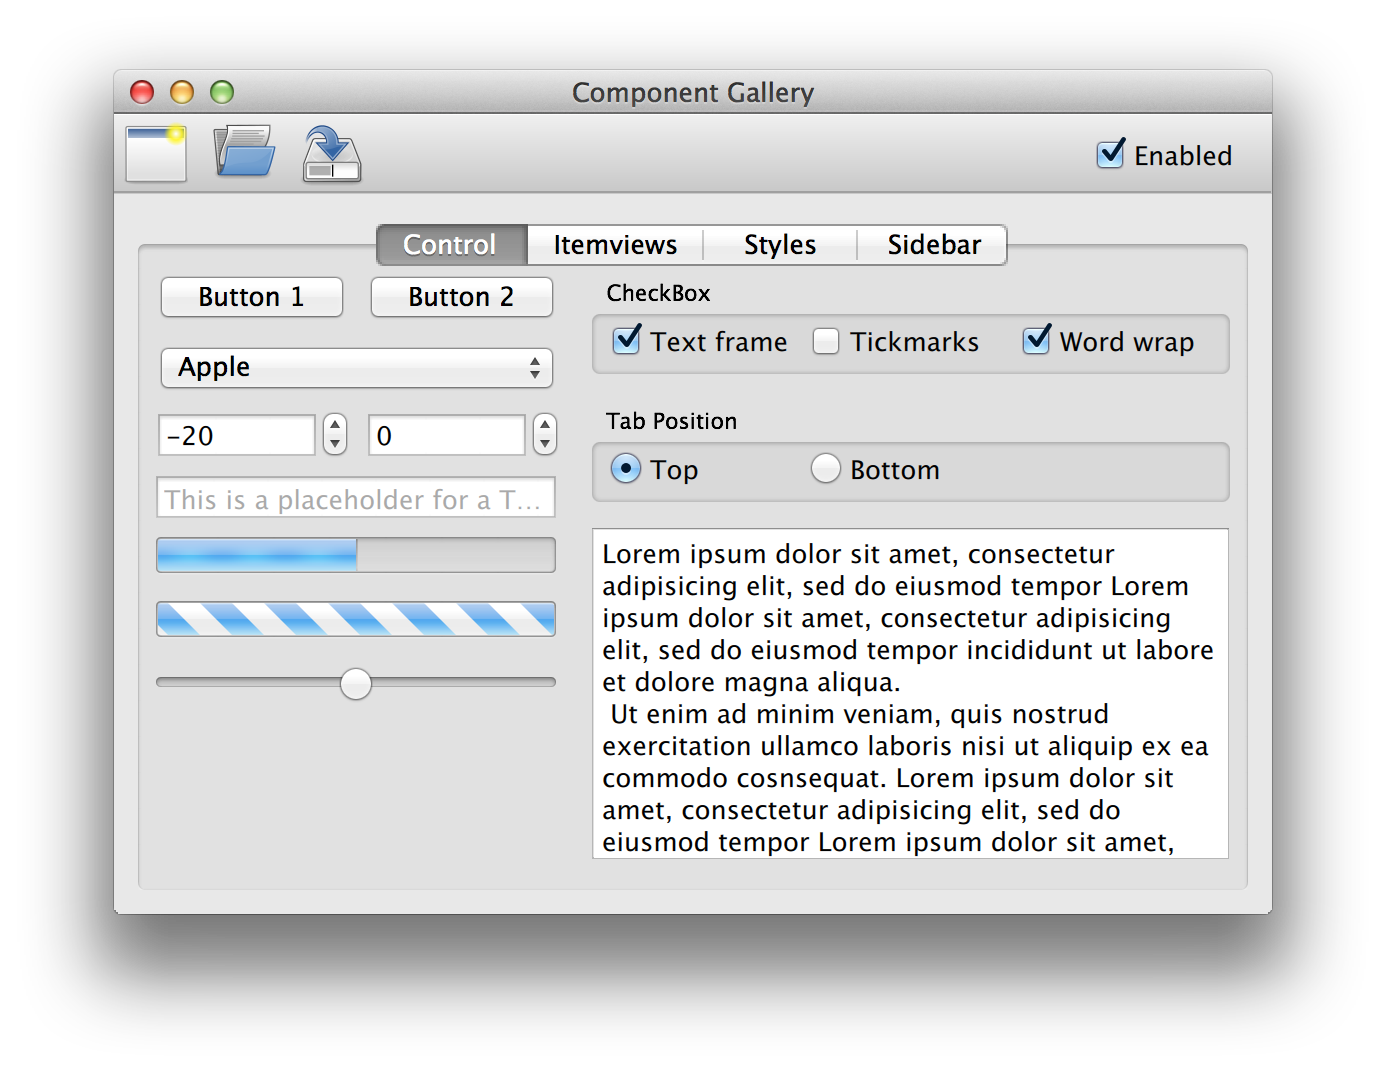 Retina display support for Mac OS, iOS and X11